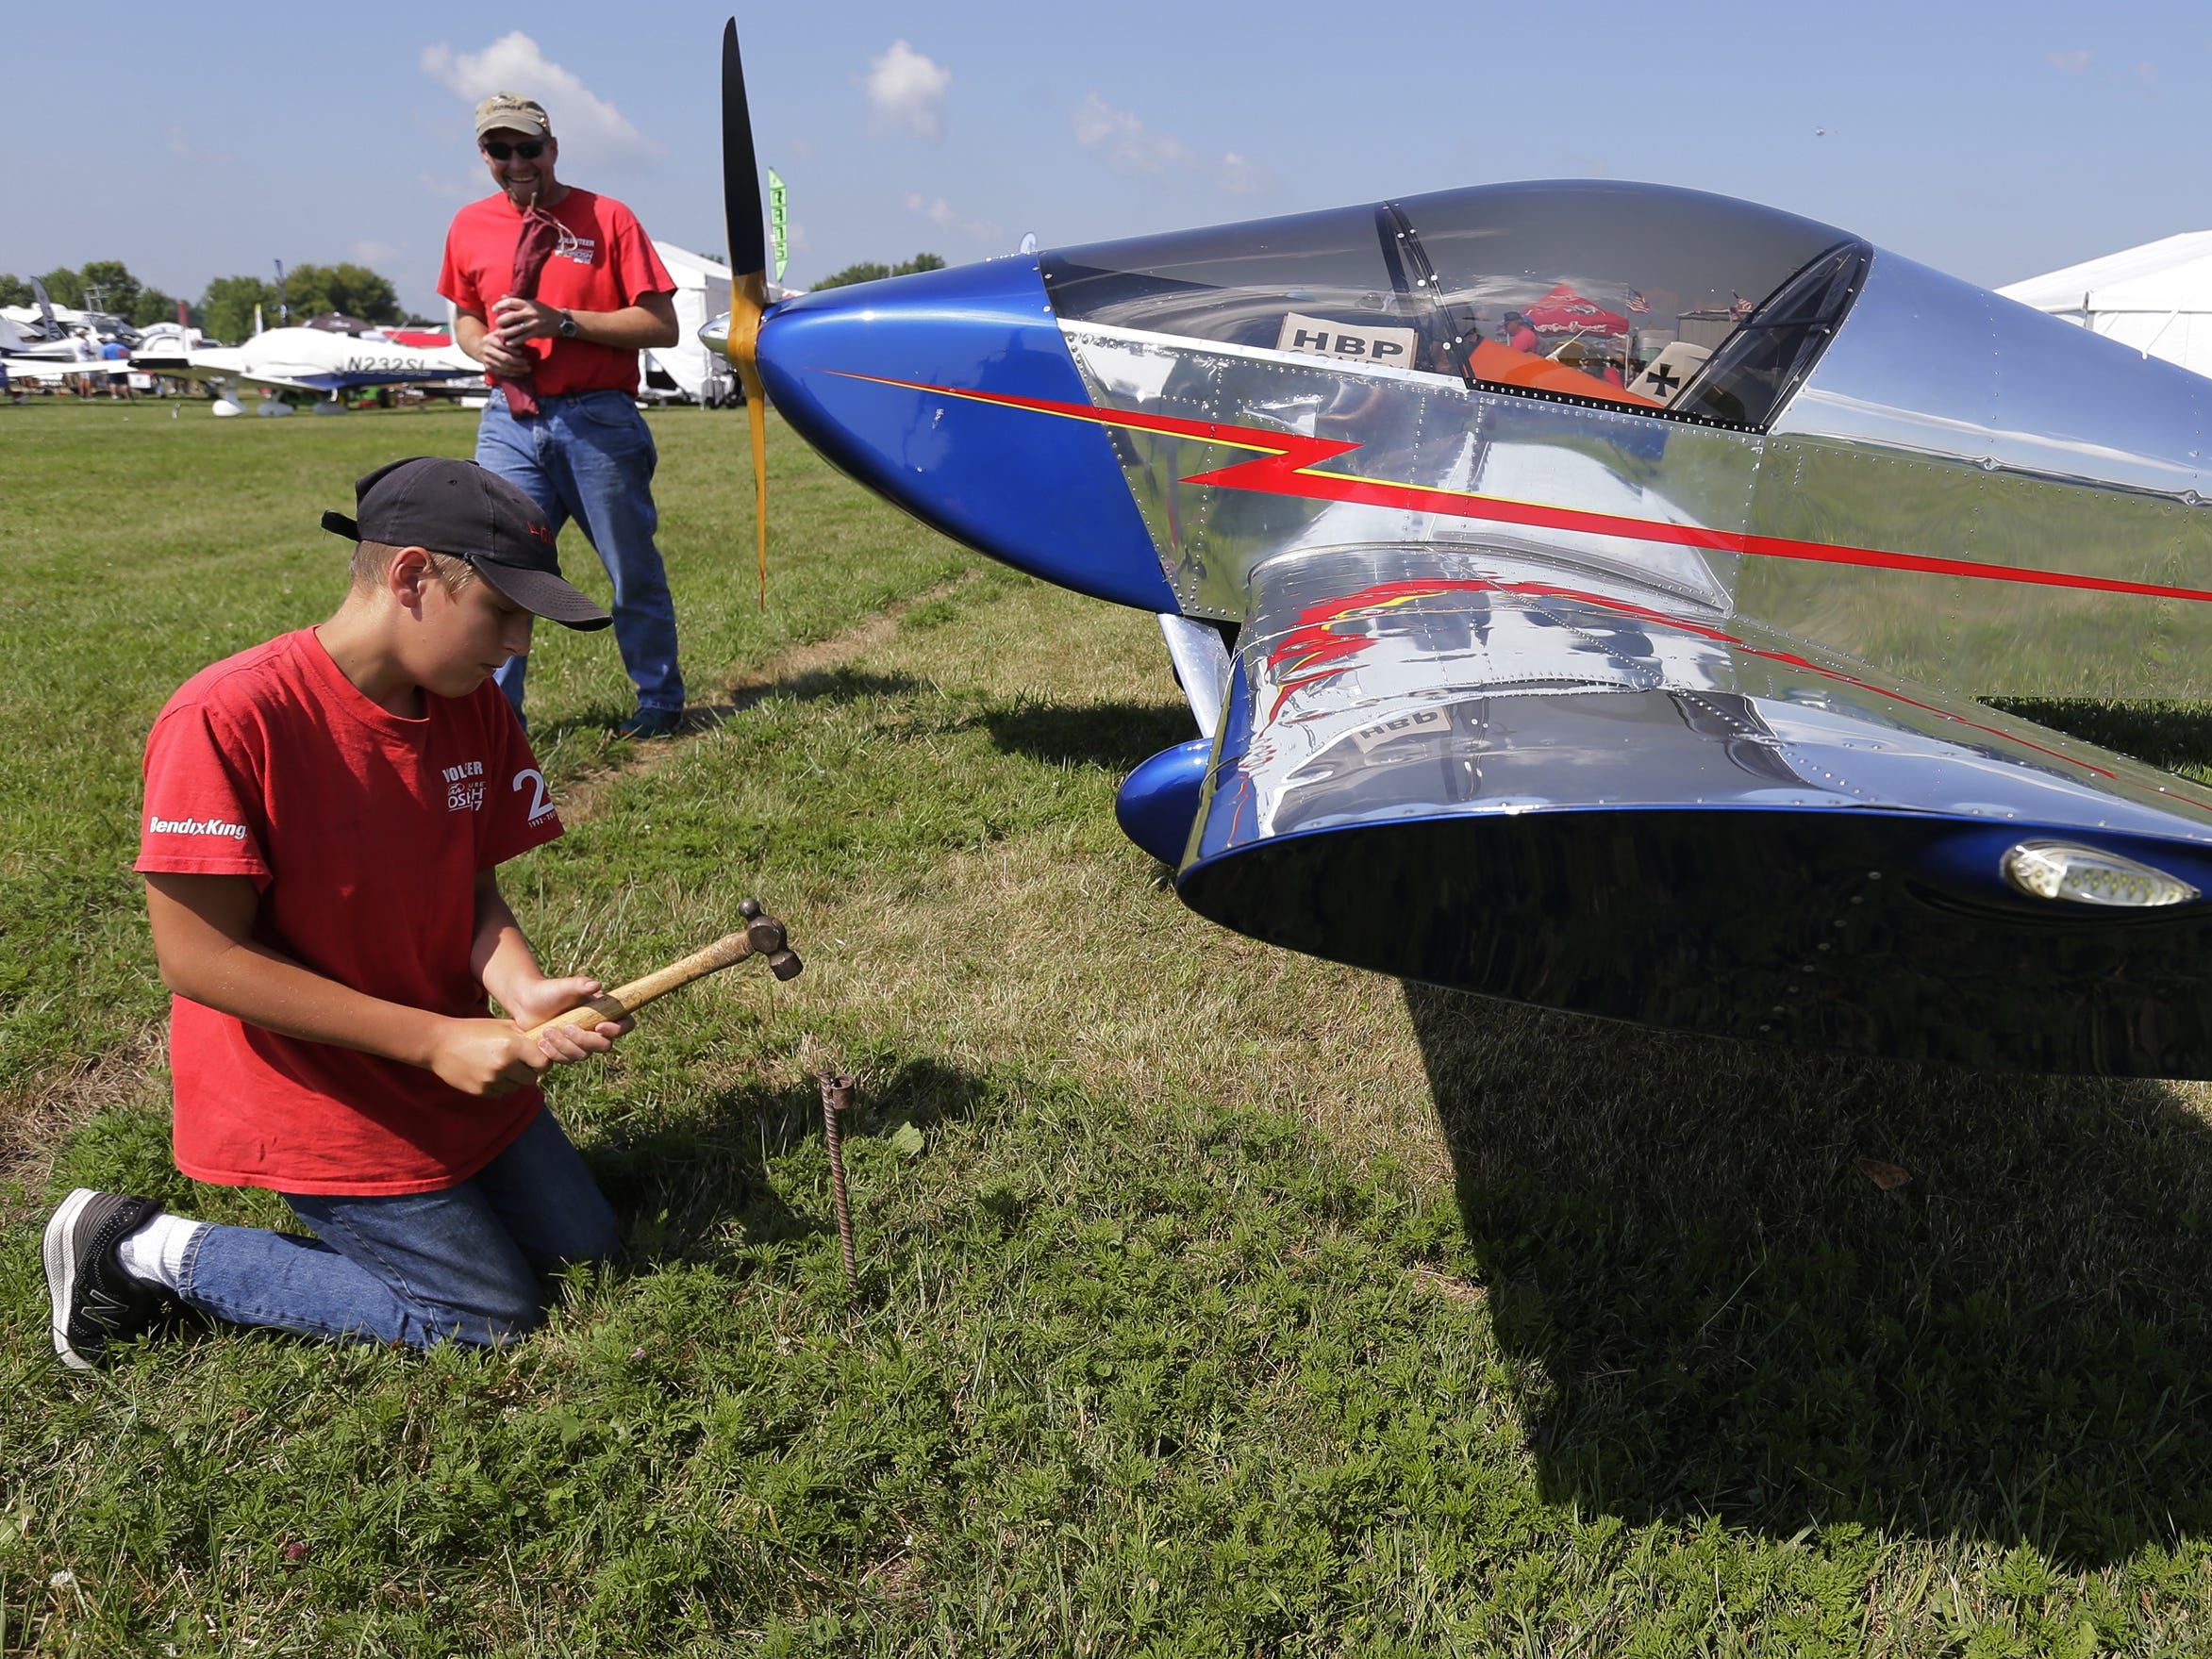 Frank Zuege pounds a stake into the ground as he helps his dad James Zuege of Kewanee, Wis., tie off their SONEX that they flew to Oshkosh Tuesday, July 24, 2018, in Oshkosh, Wis.  The 66th annual Experimental Aircraft Association Fly-In Convention, AirVenture 2018 draws over 500,000 people annually to the area.  The convention runs through July 29. Joe Sienkiewicz/USA Today NETWORK-Wisconsin